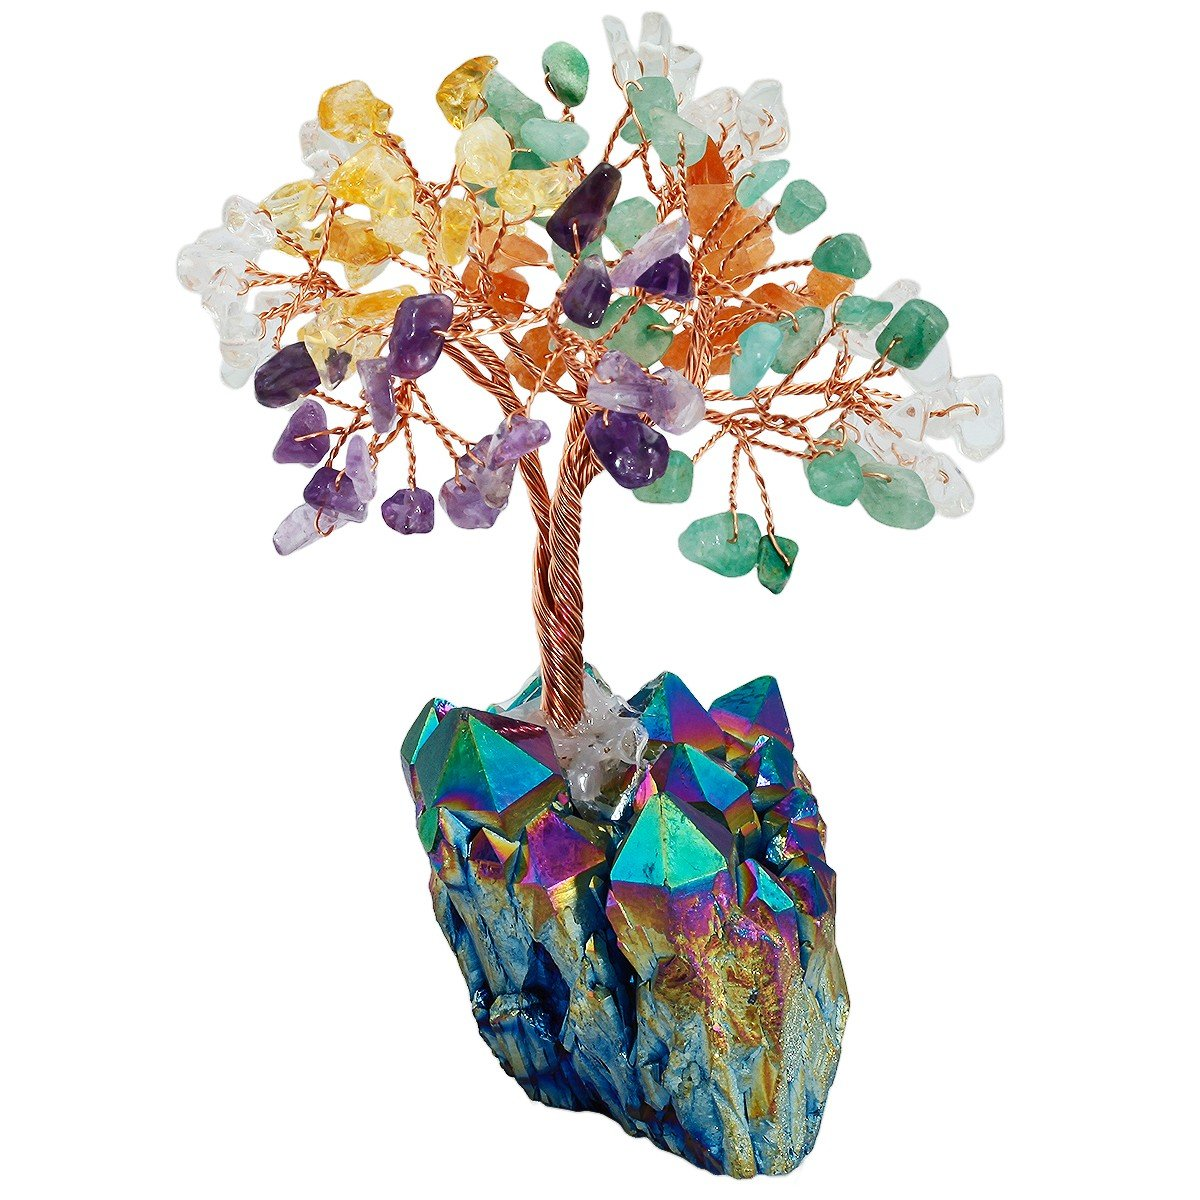 SUNYIK Natural Multicolor Crystal Money Tree,Rainbow Aura Titanium Quartz Cluster Base Bonsai Sculpture Figurine 4 Inch